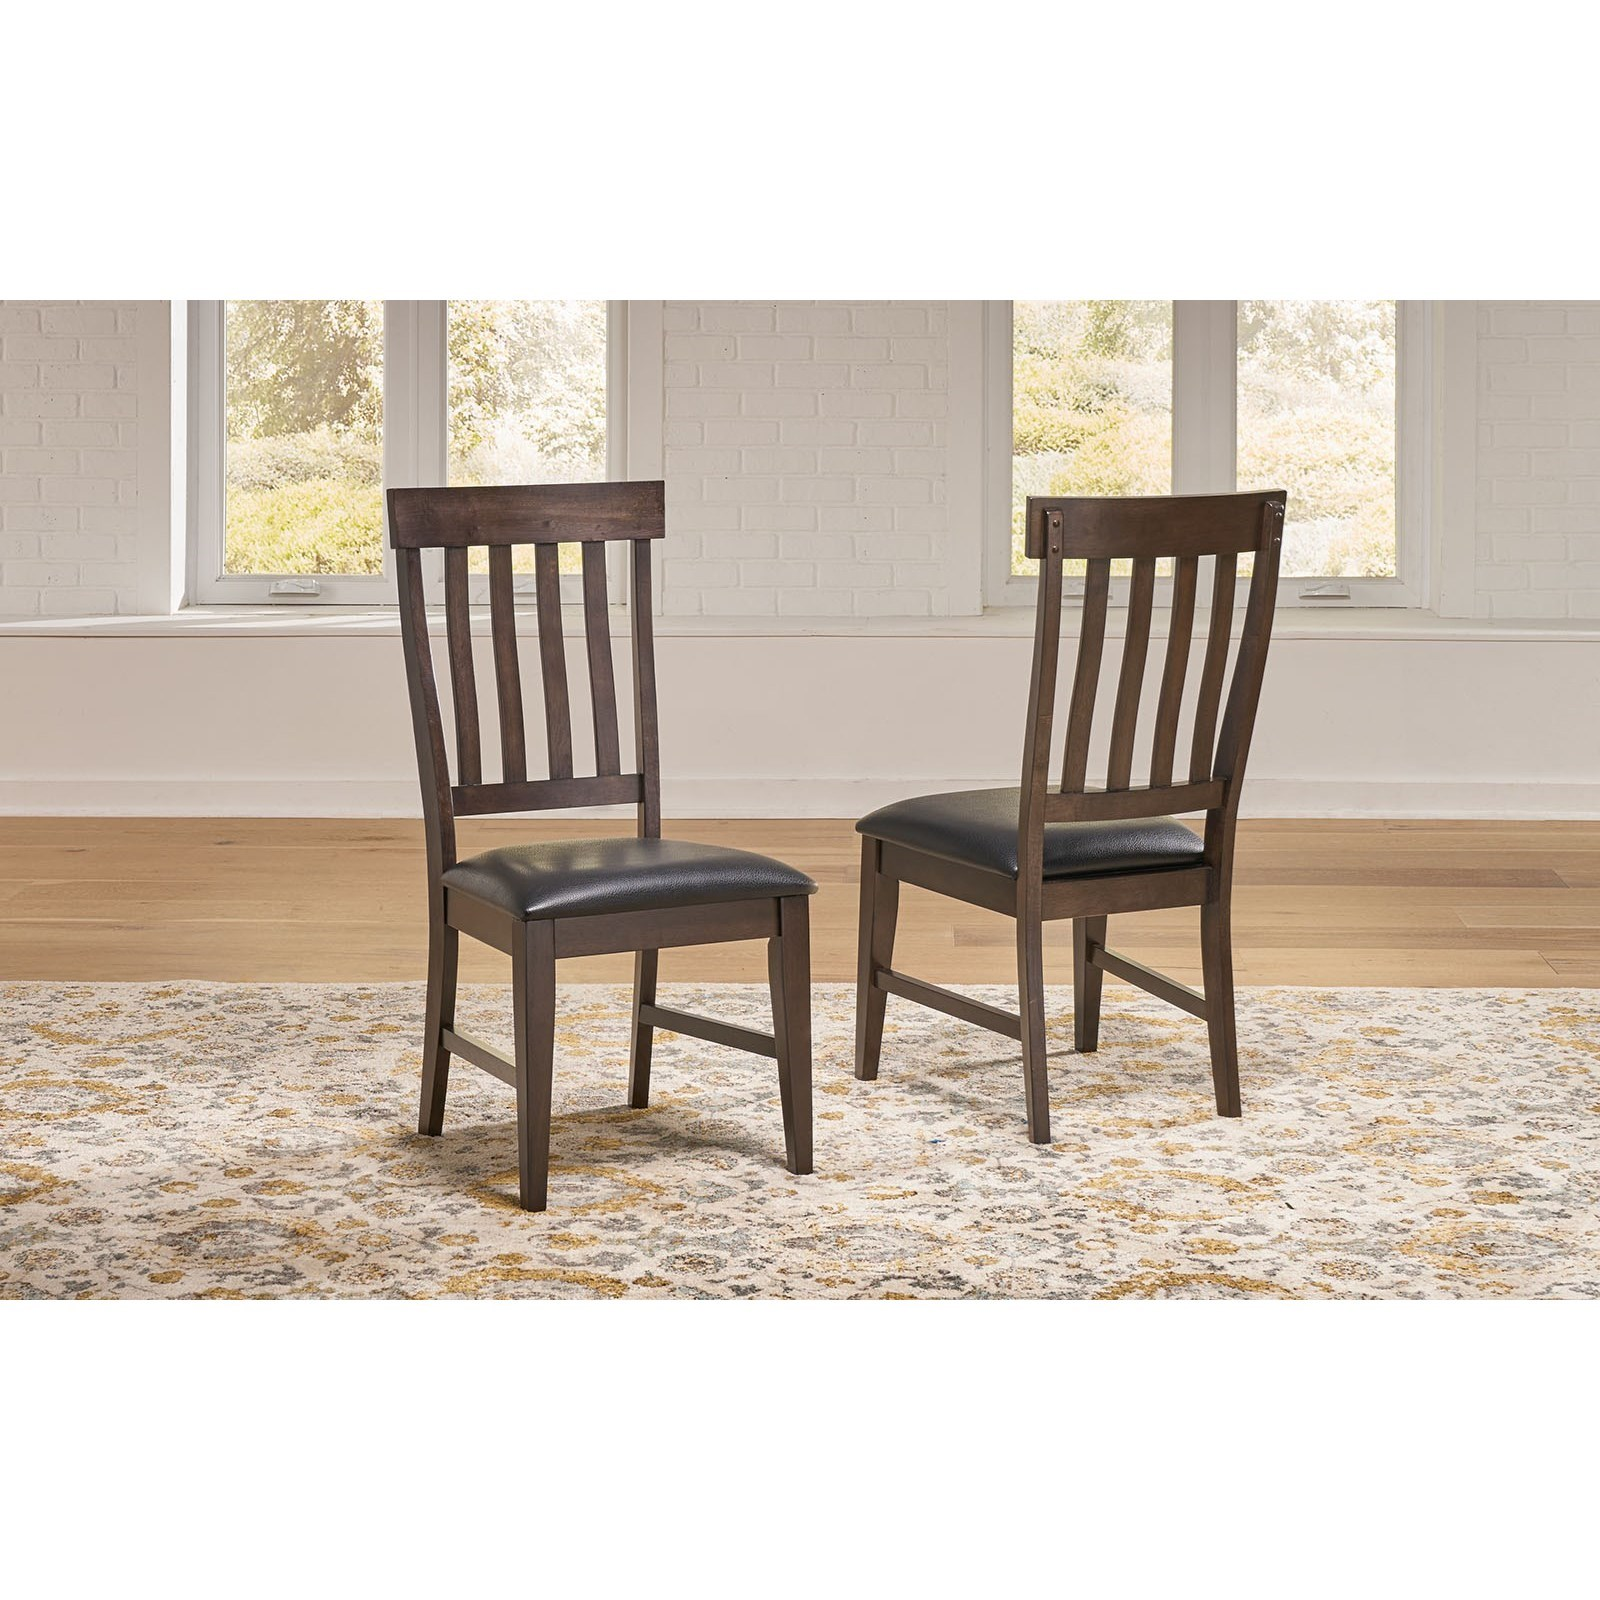 Bremerton Dining Chair by AAmerica at SuperStore